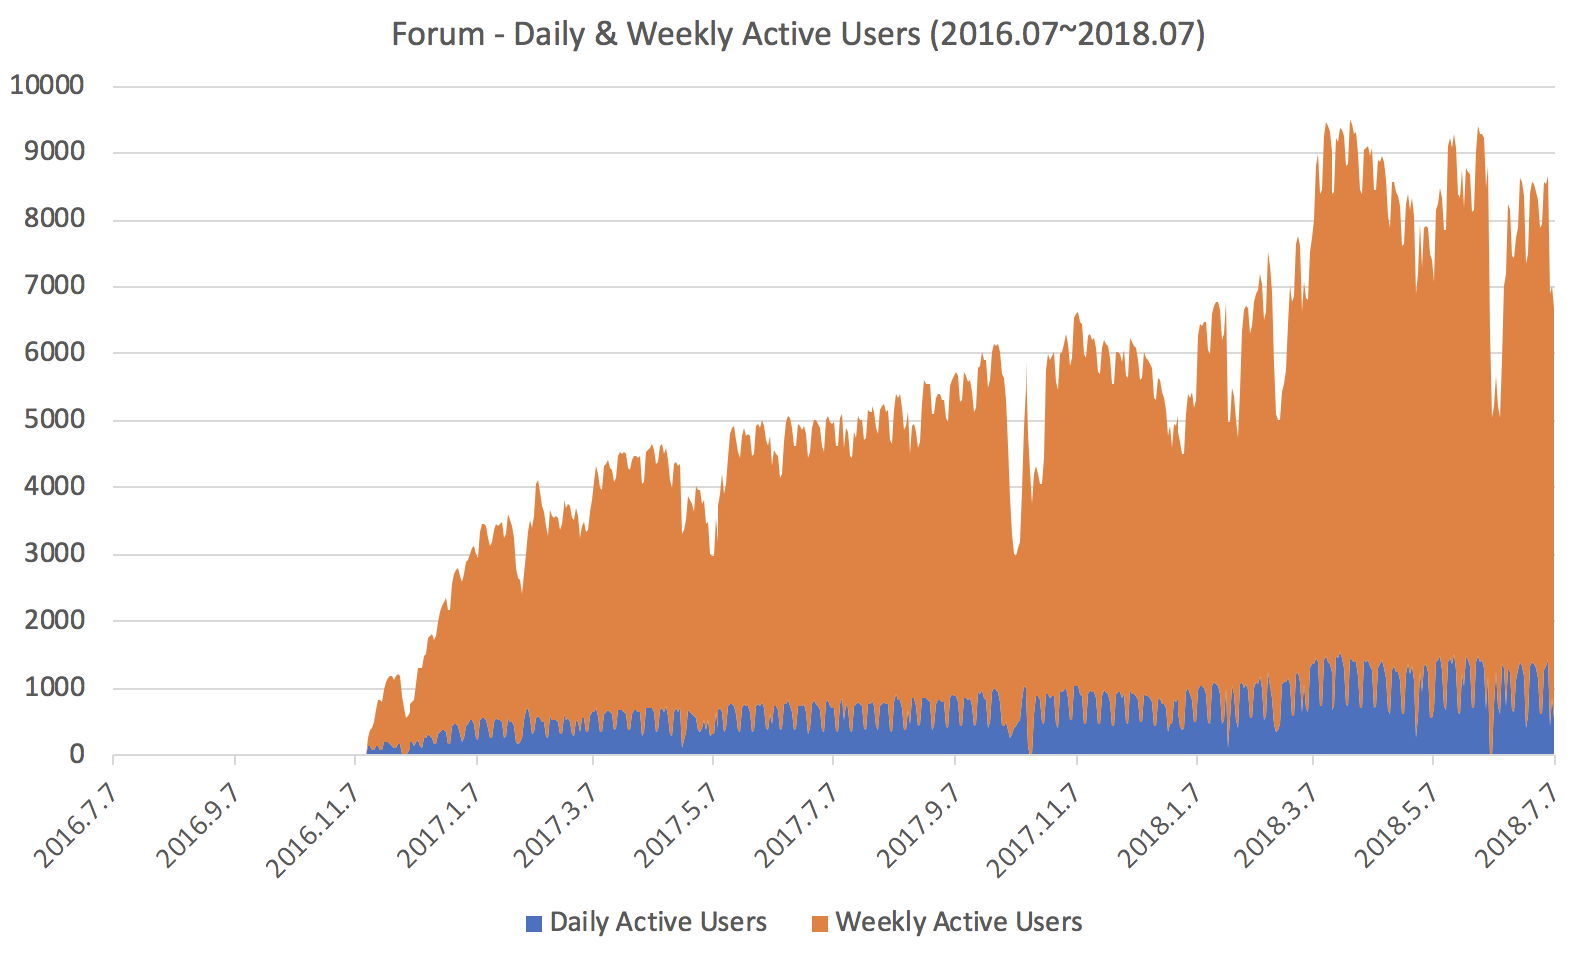 Forum Daily & Weekly Active Users